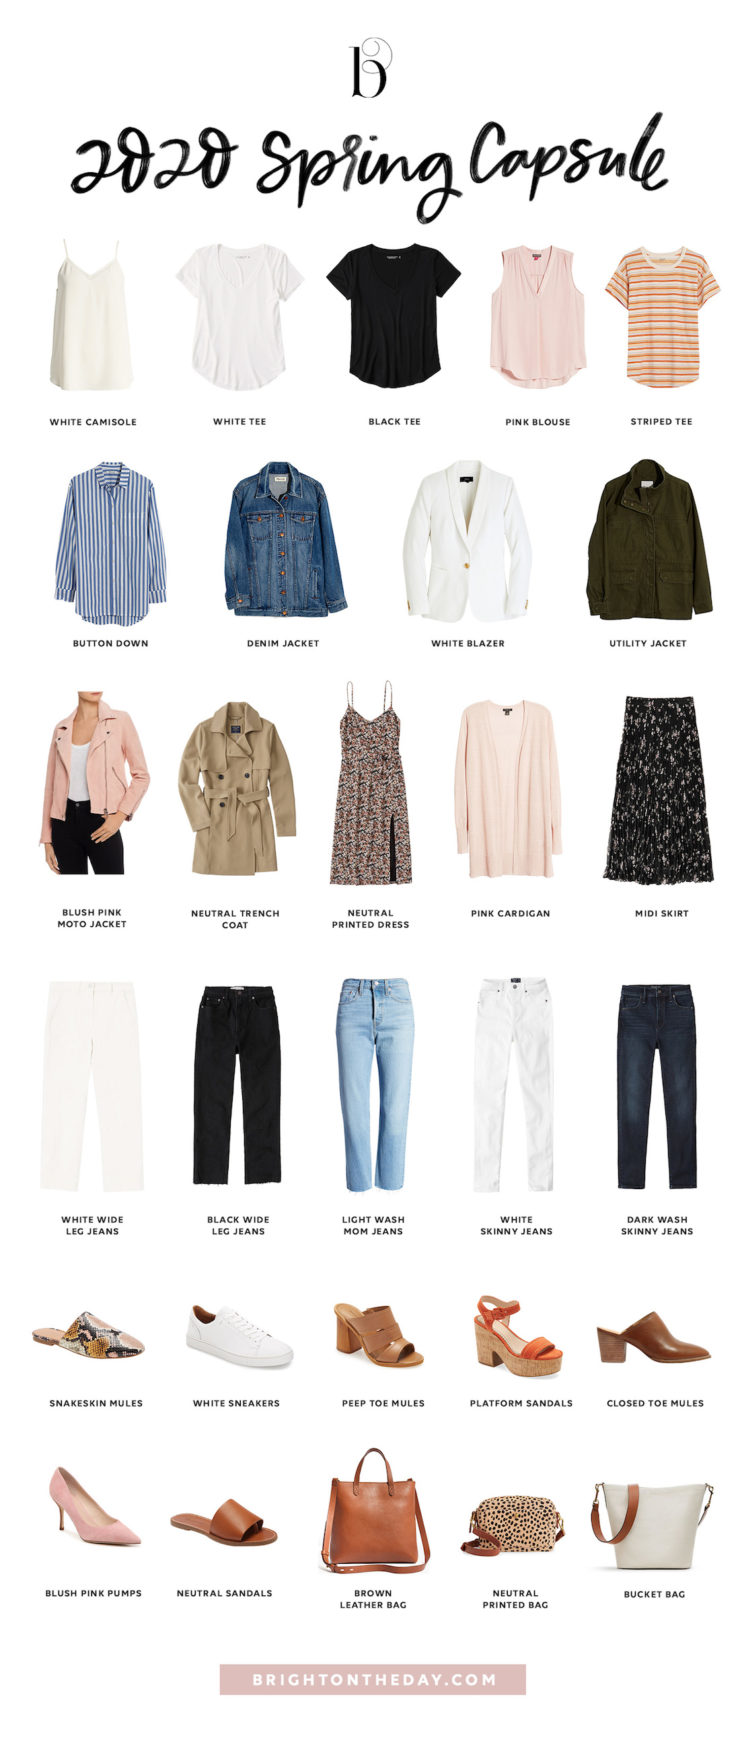 Spring Outfit Ideas: Cute Transitional Outfits for Spring